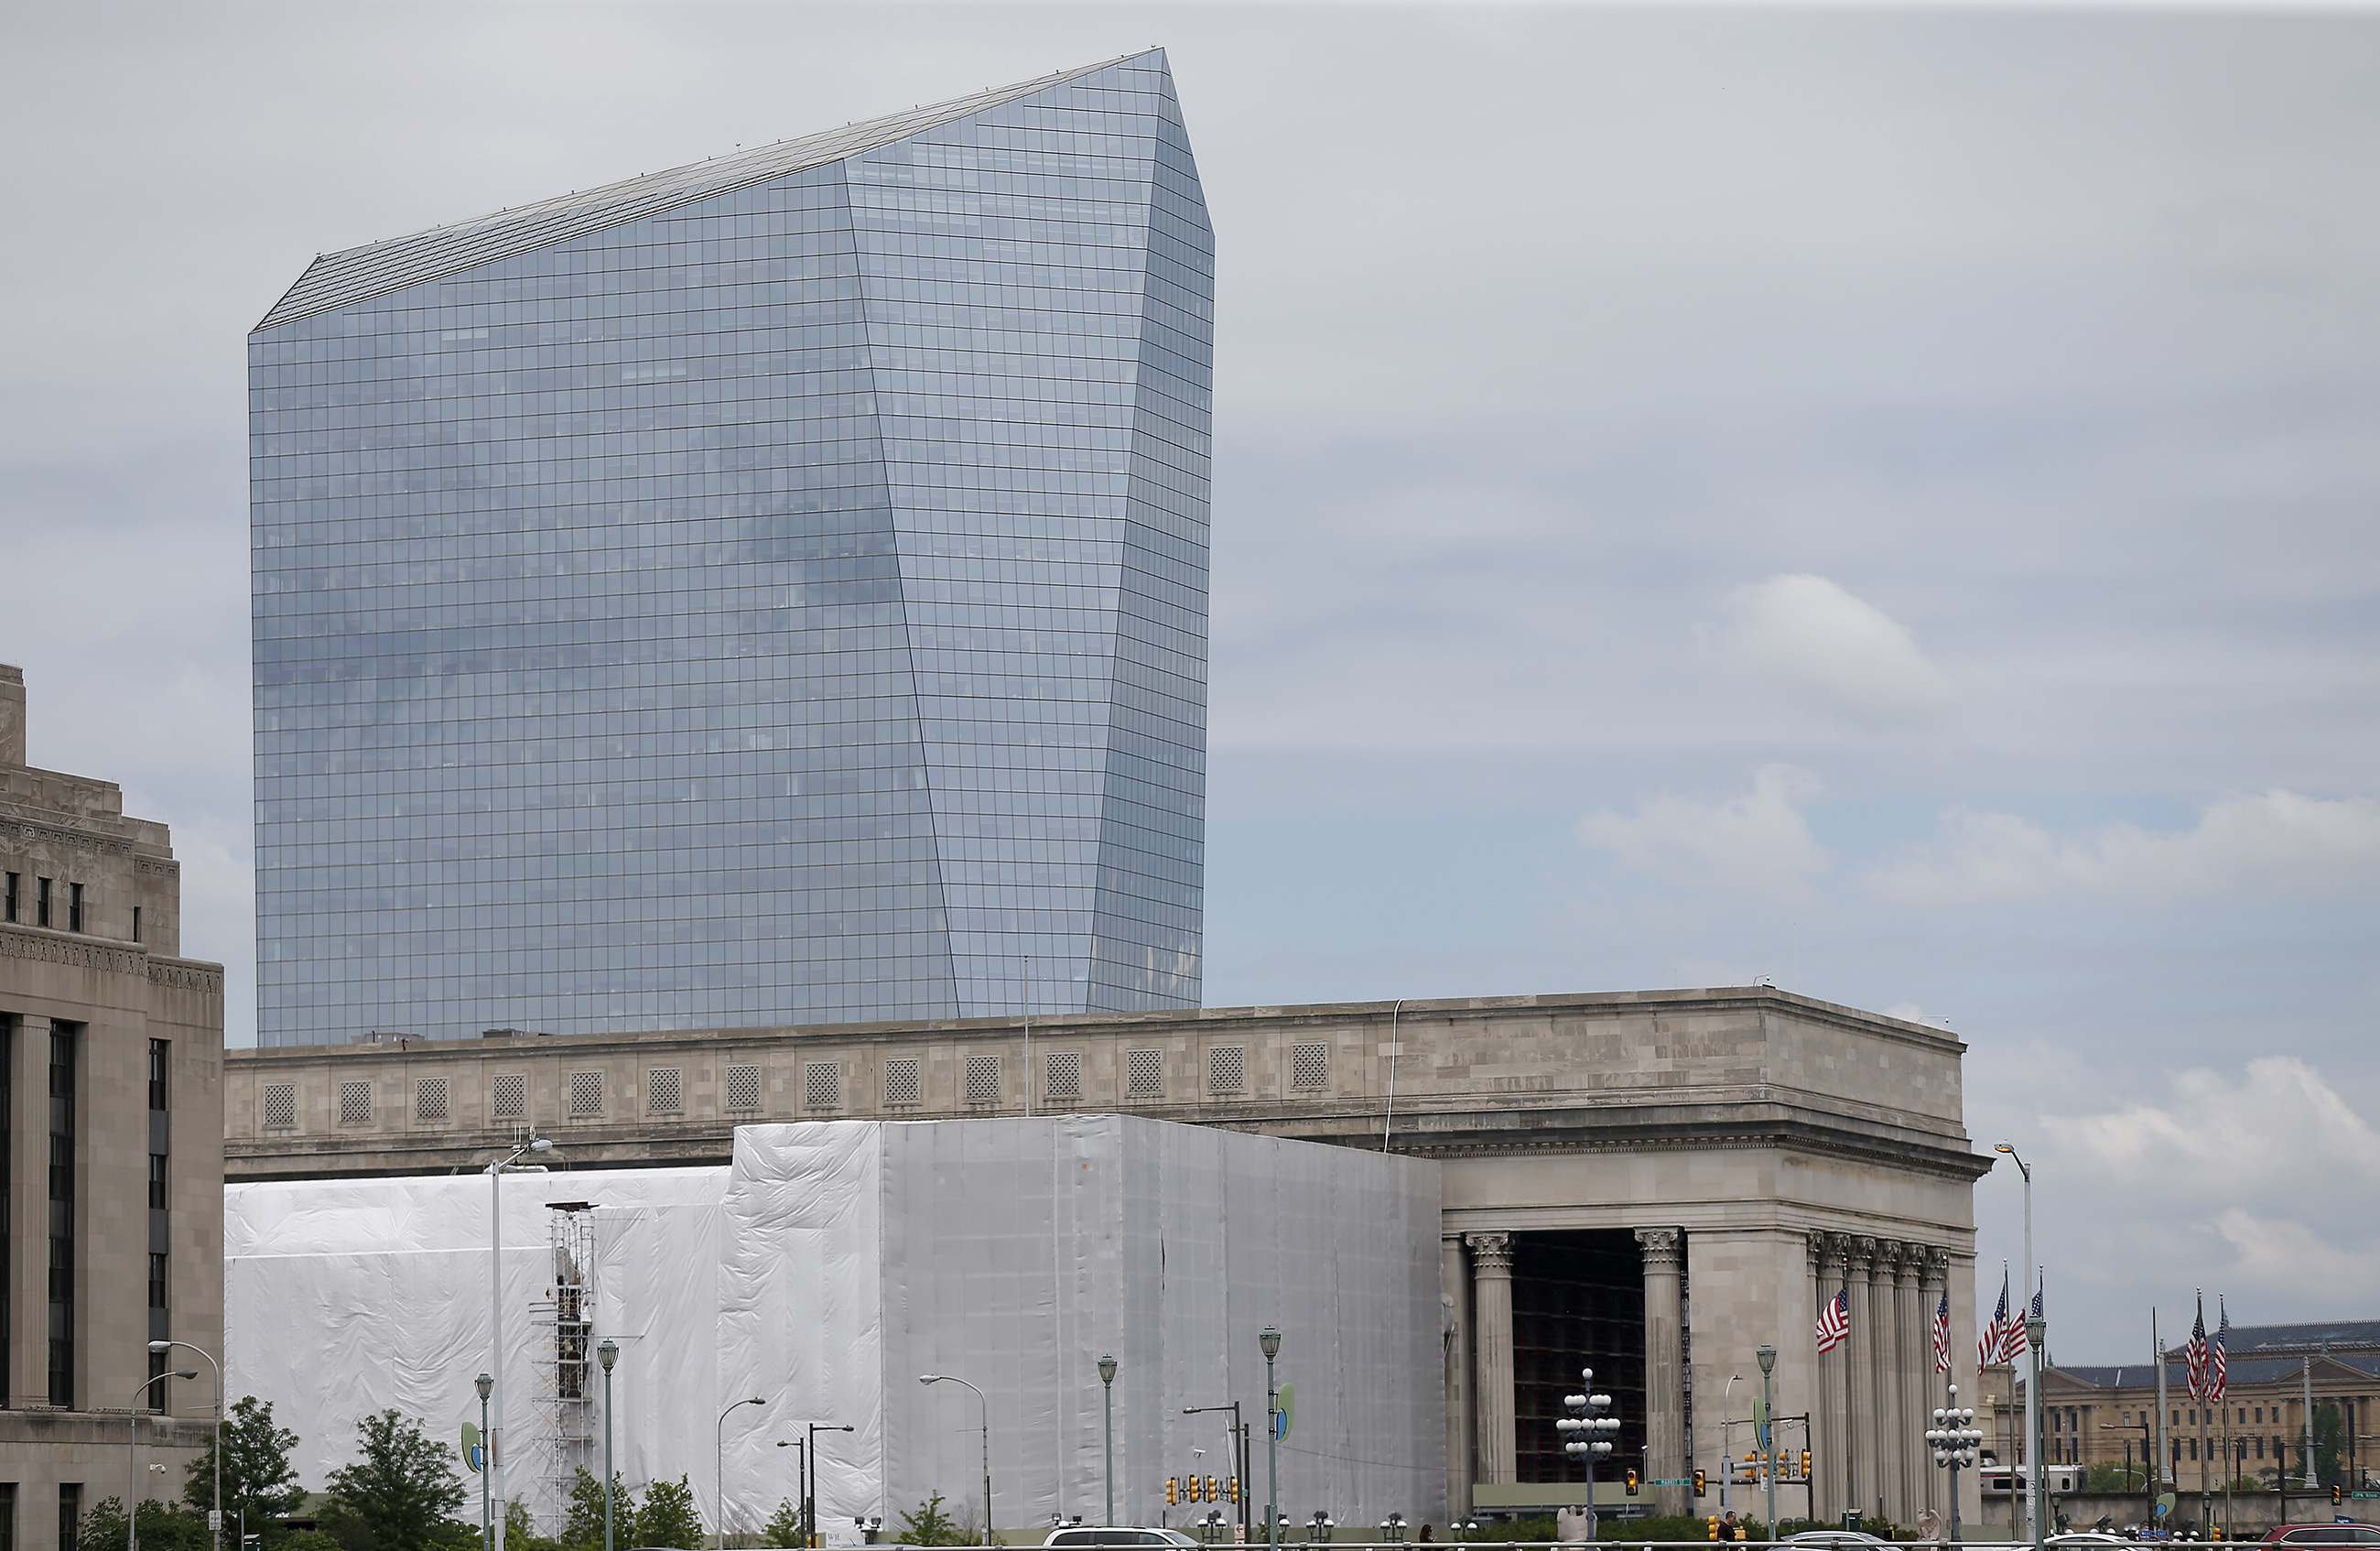 The Cira Centre with 30th Street Station in the foreground in Philadelphia, PA on May 24, 2017. DAVID MAIALETTI / Staff Photographer